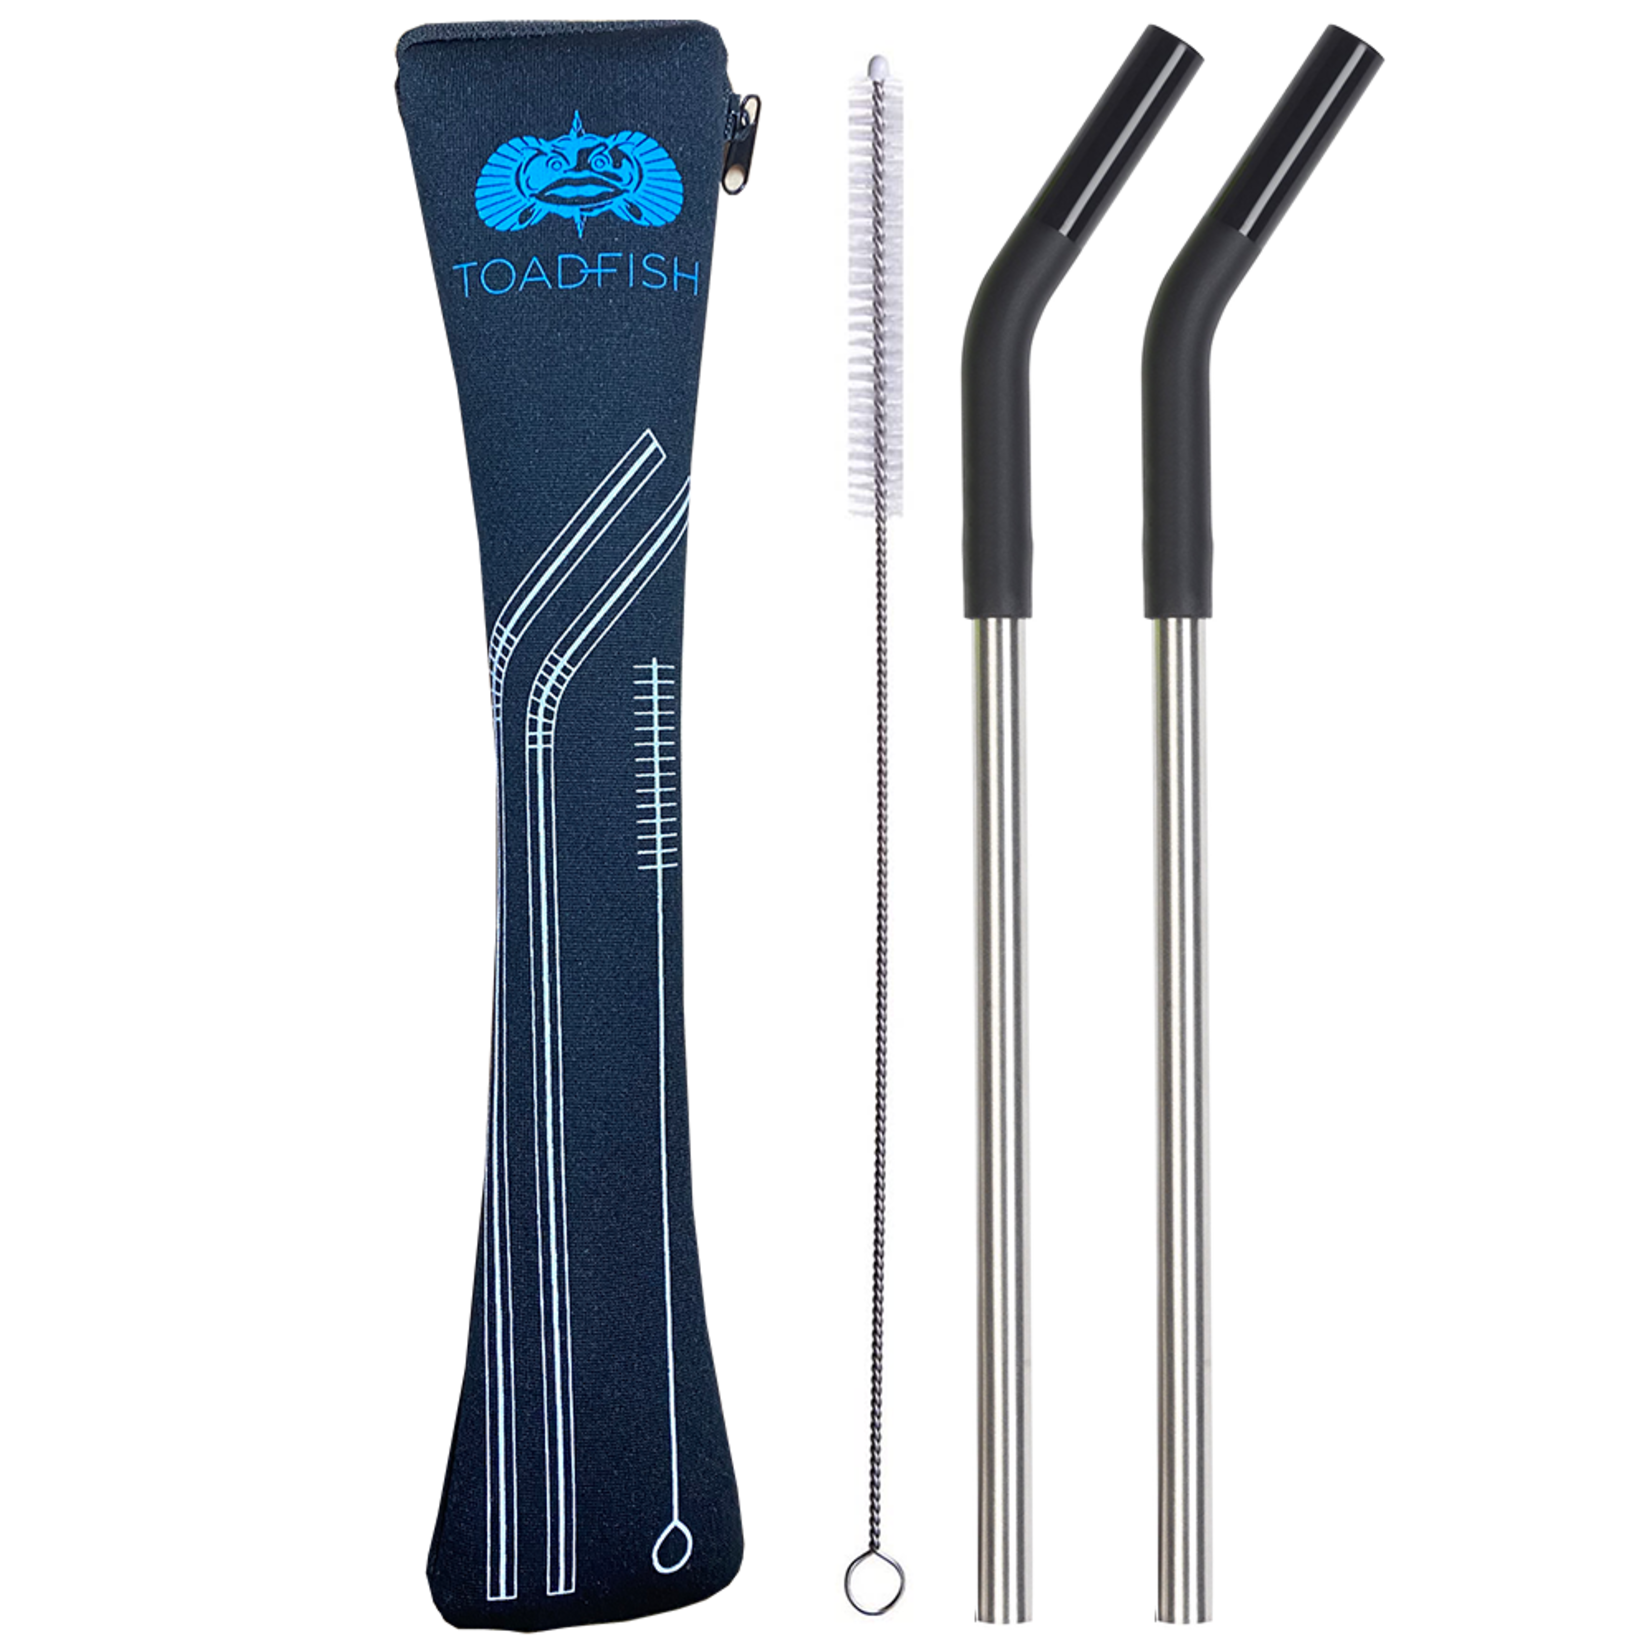 Toadfish 2 Pack Stainless Steel Straws w/ Case & Cleaner